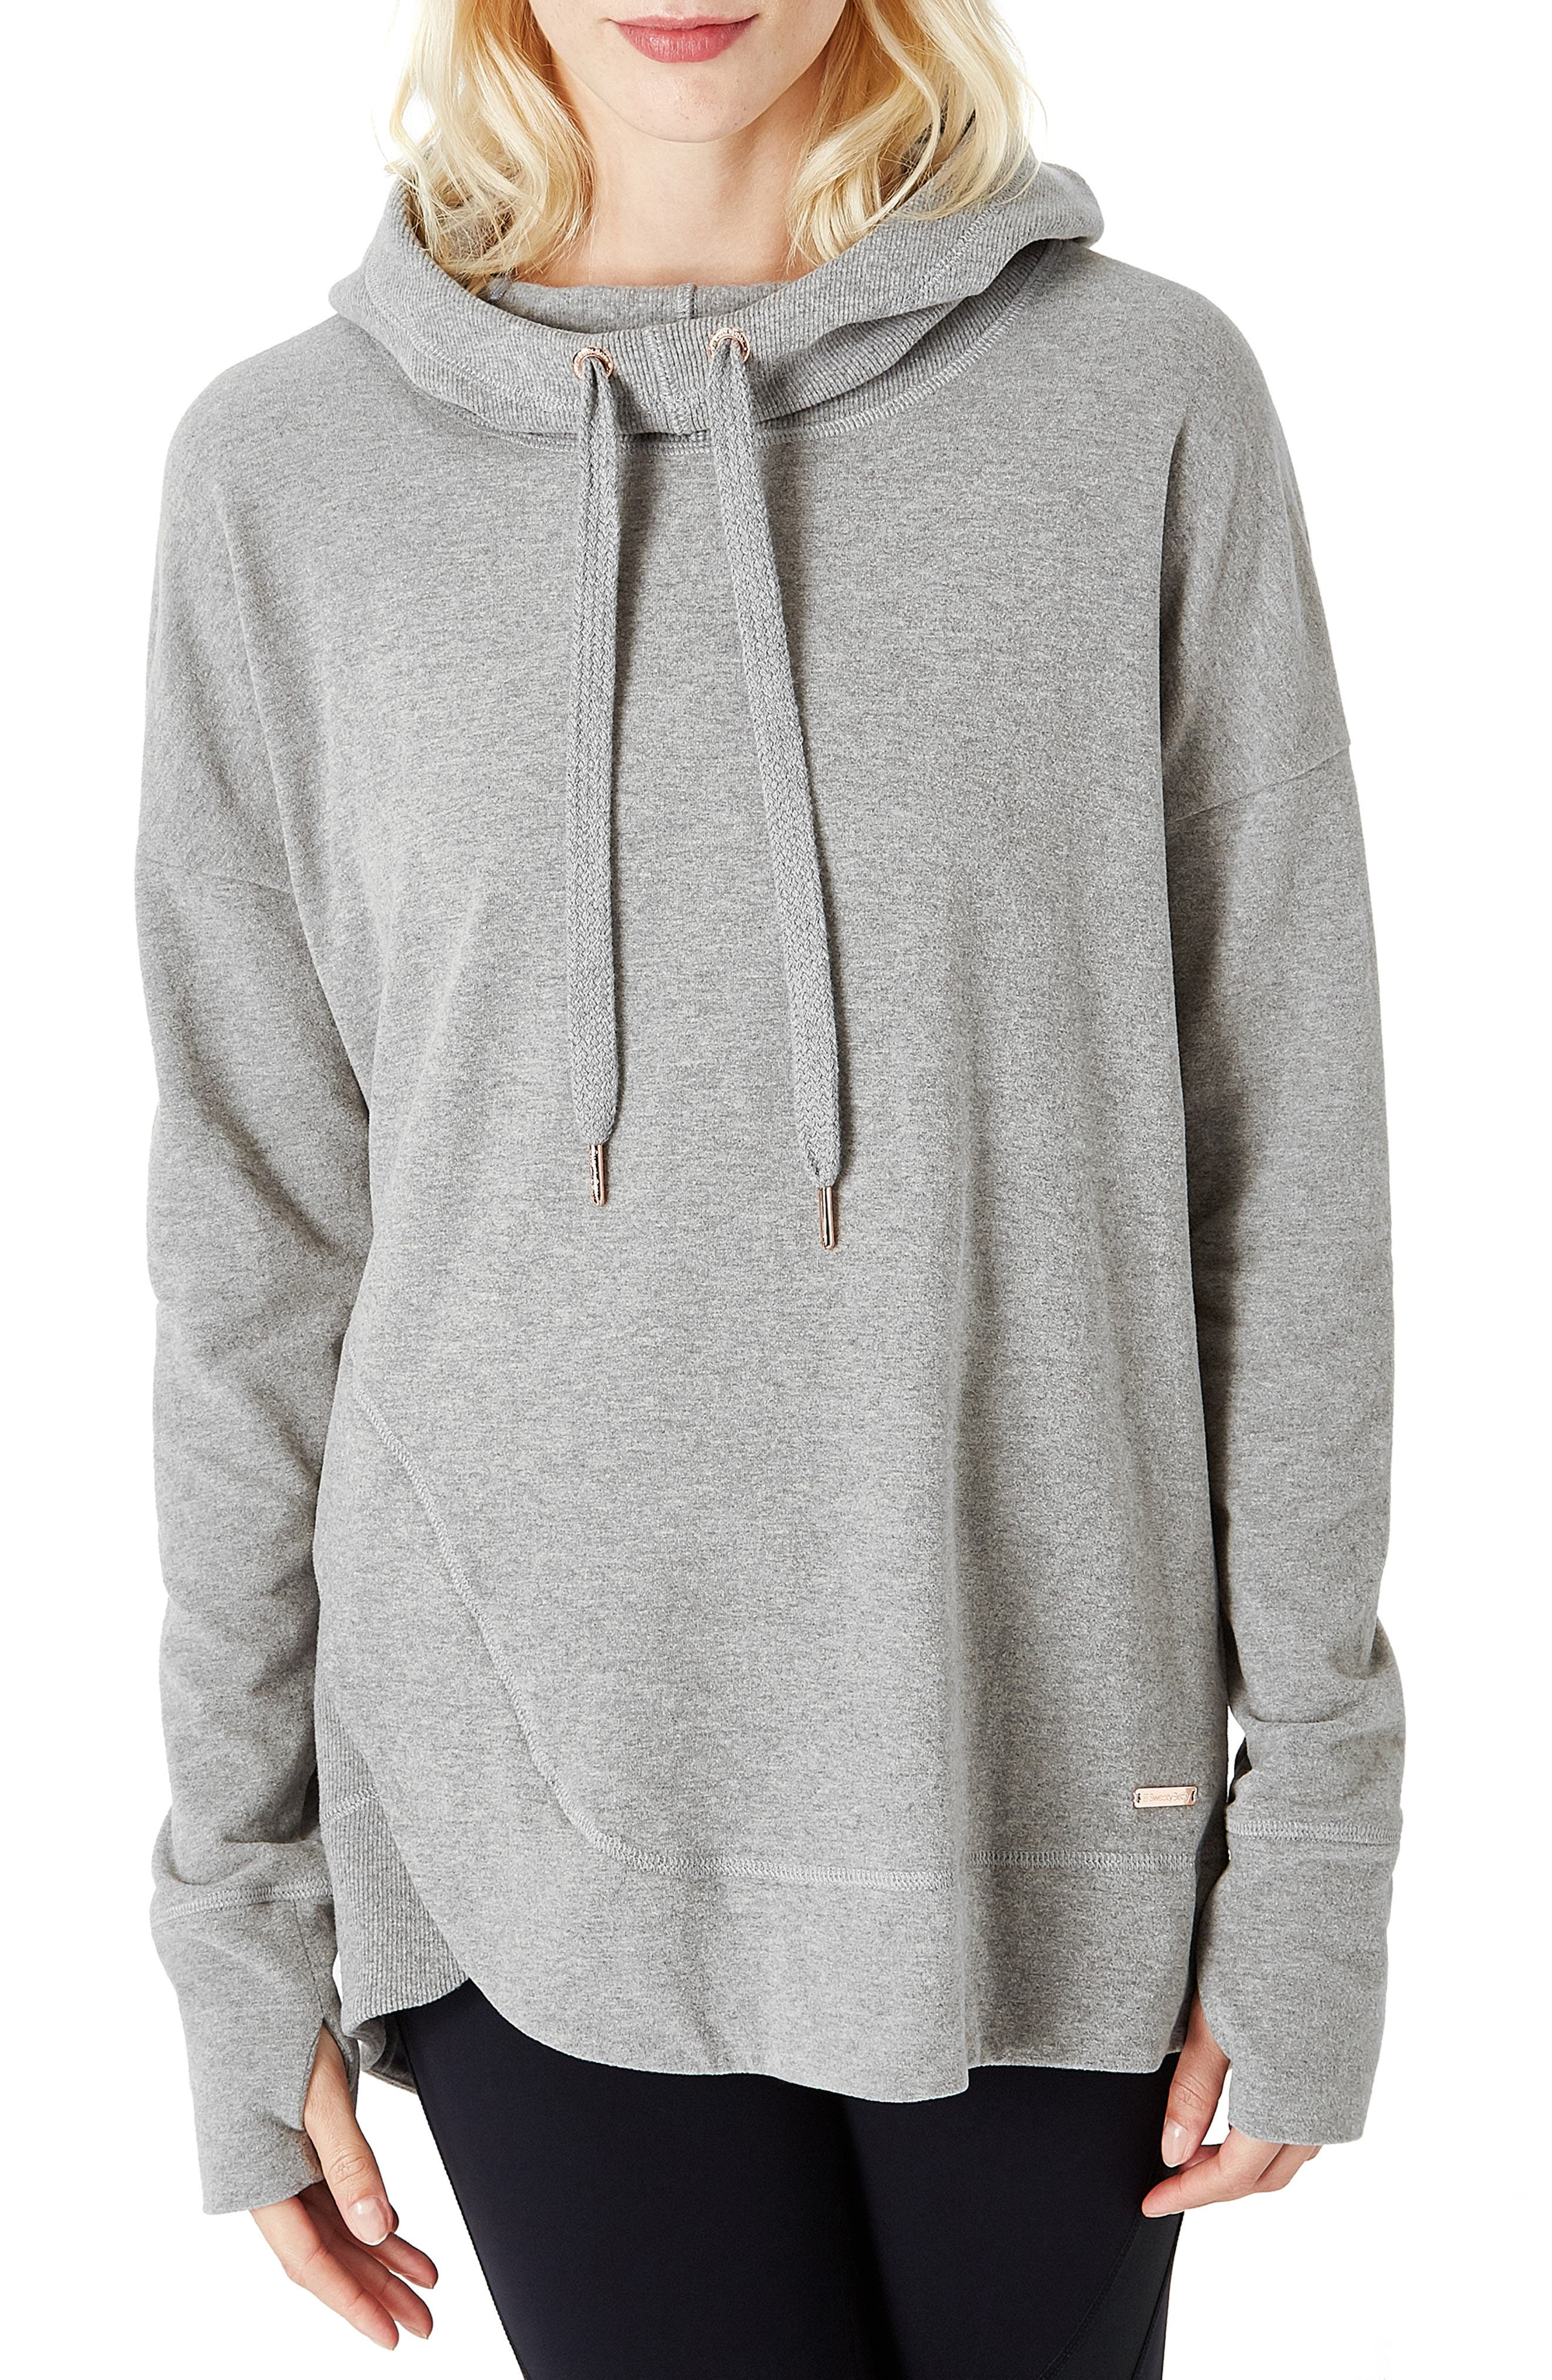 Invigorate Luxe Hoodie,                             Main thumbnail 1, color,                             LIGHT GREY MARL